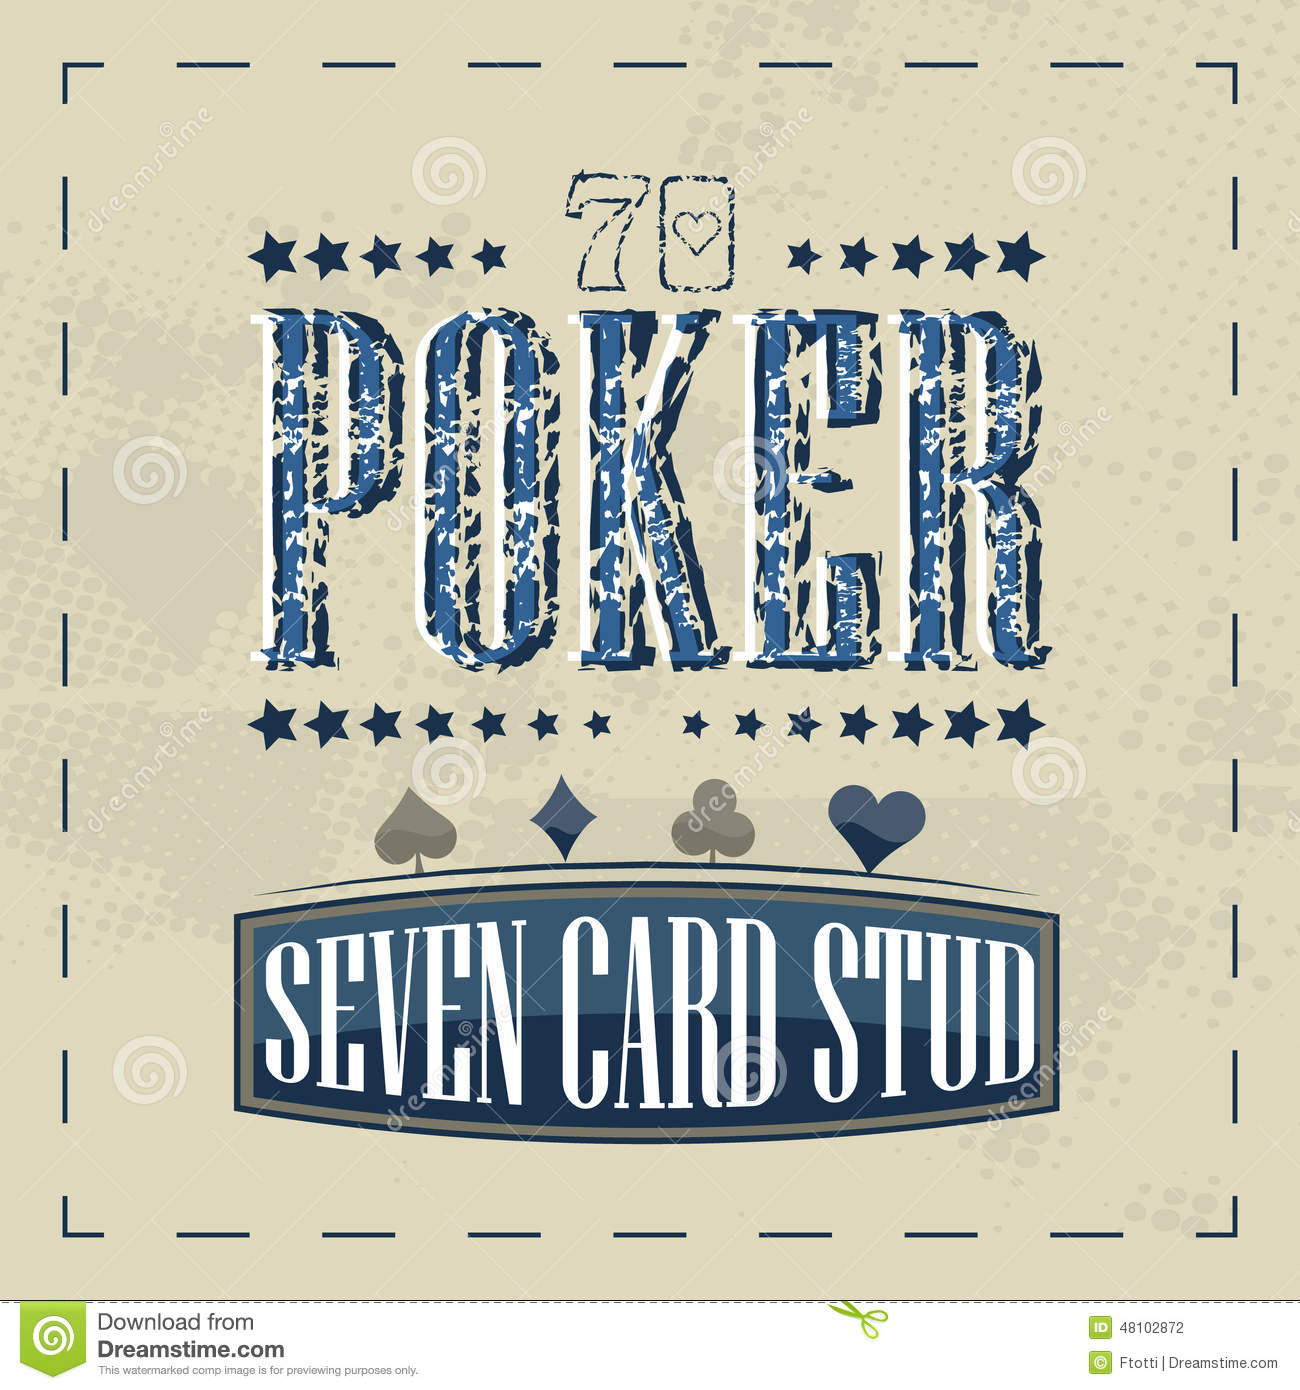 Limit stud hi lo poker